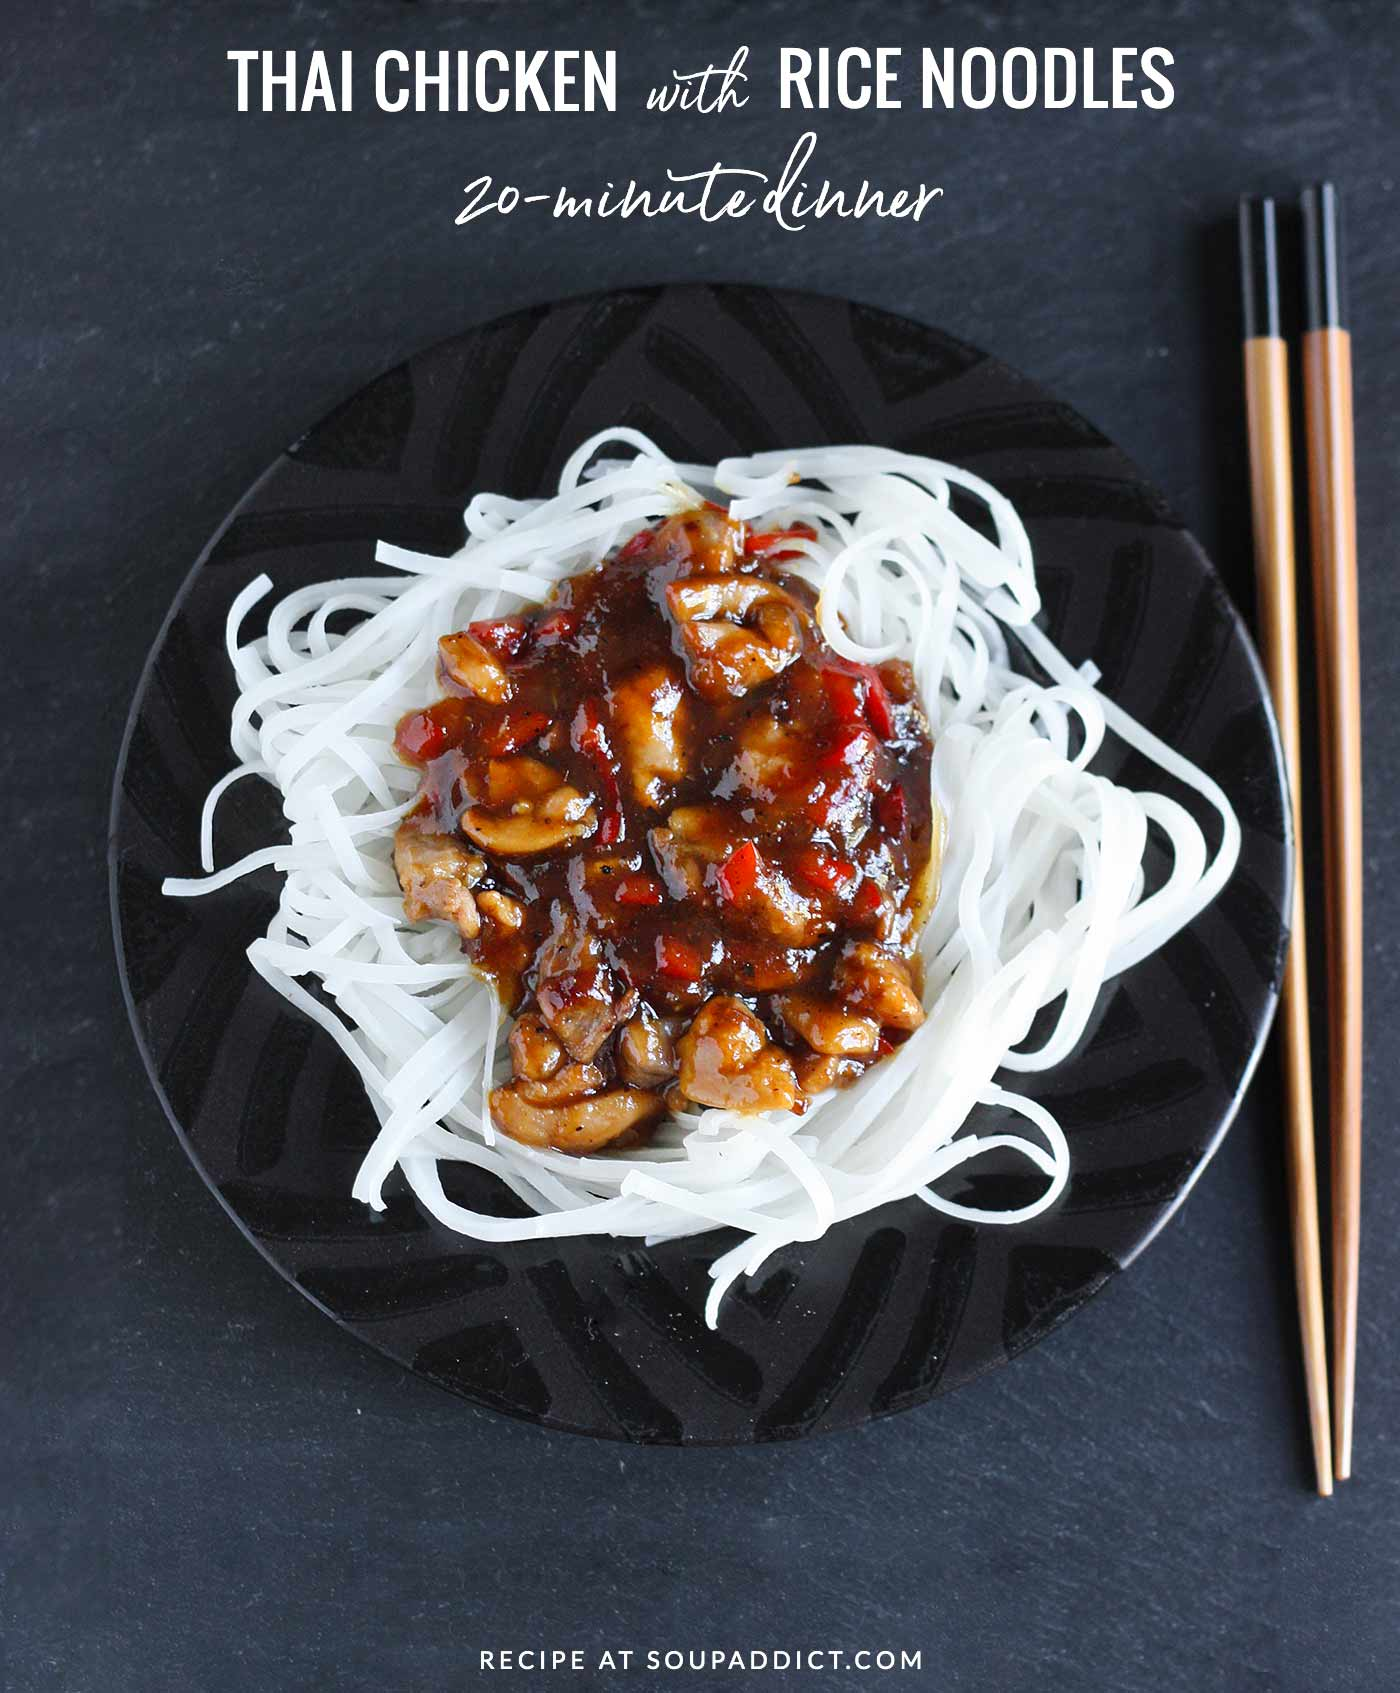 Easy weeknight meal - Thai Chicken with Rice Noodles